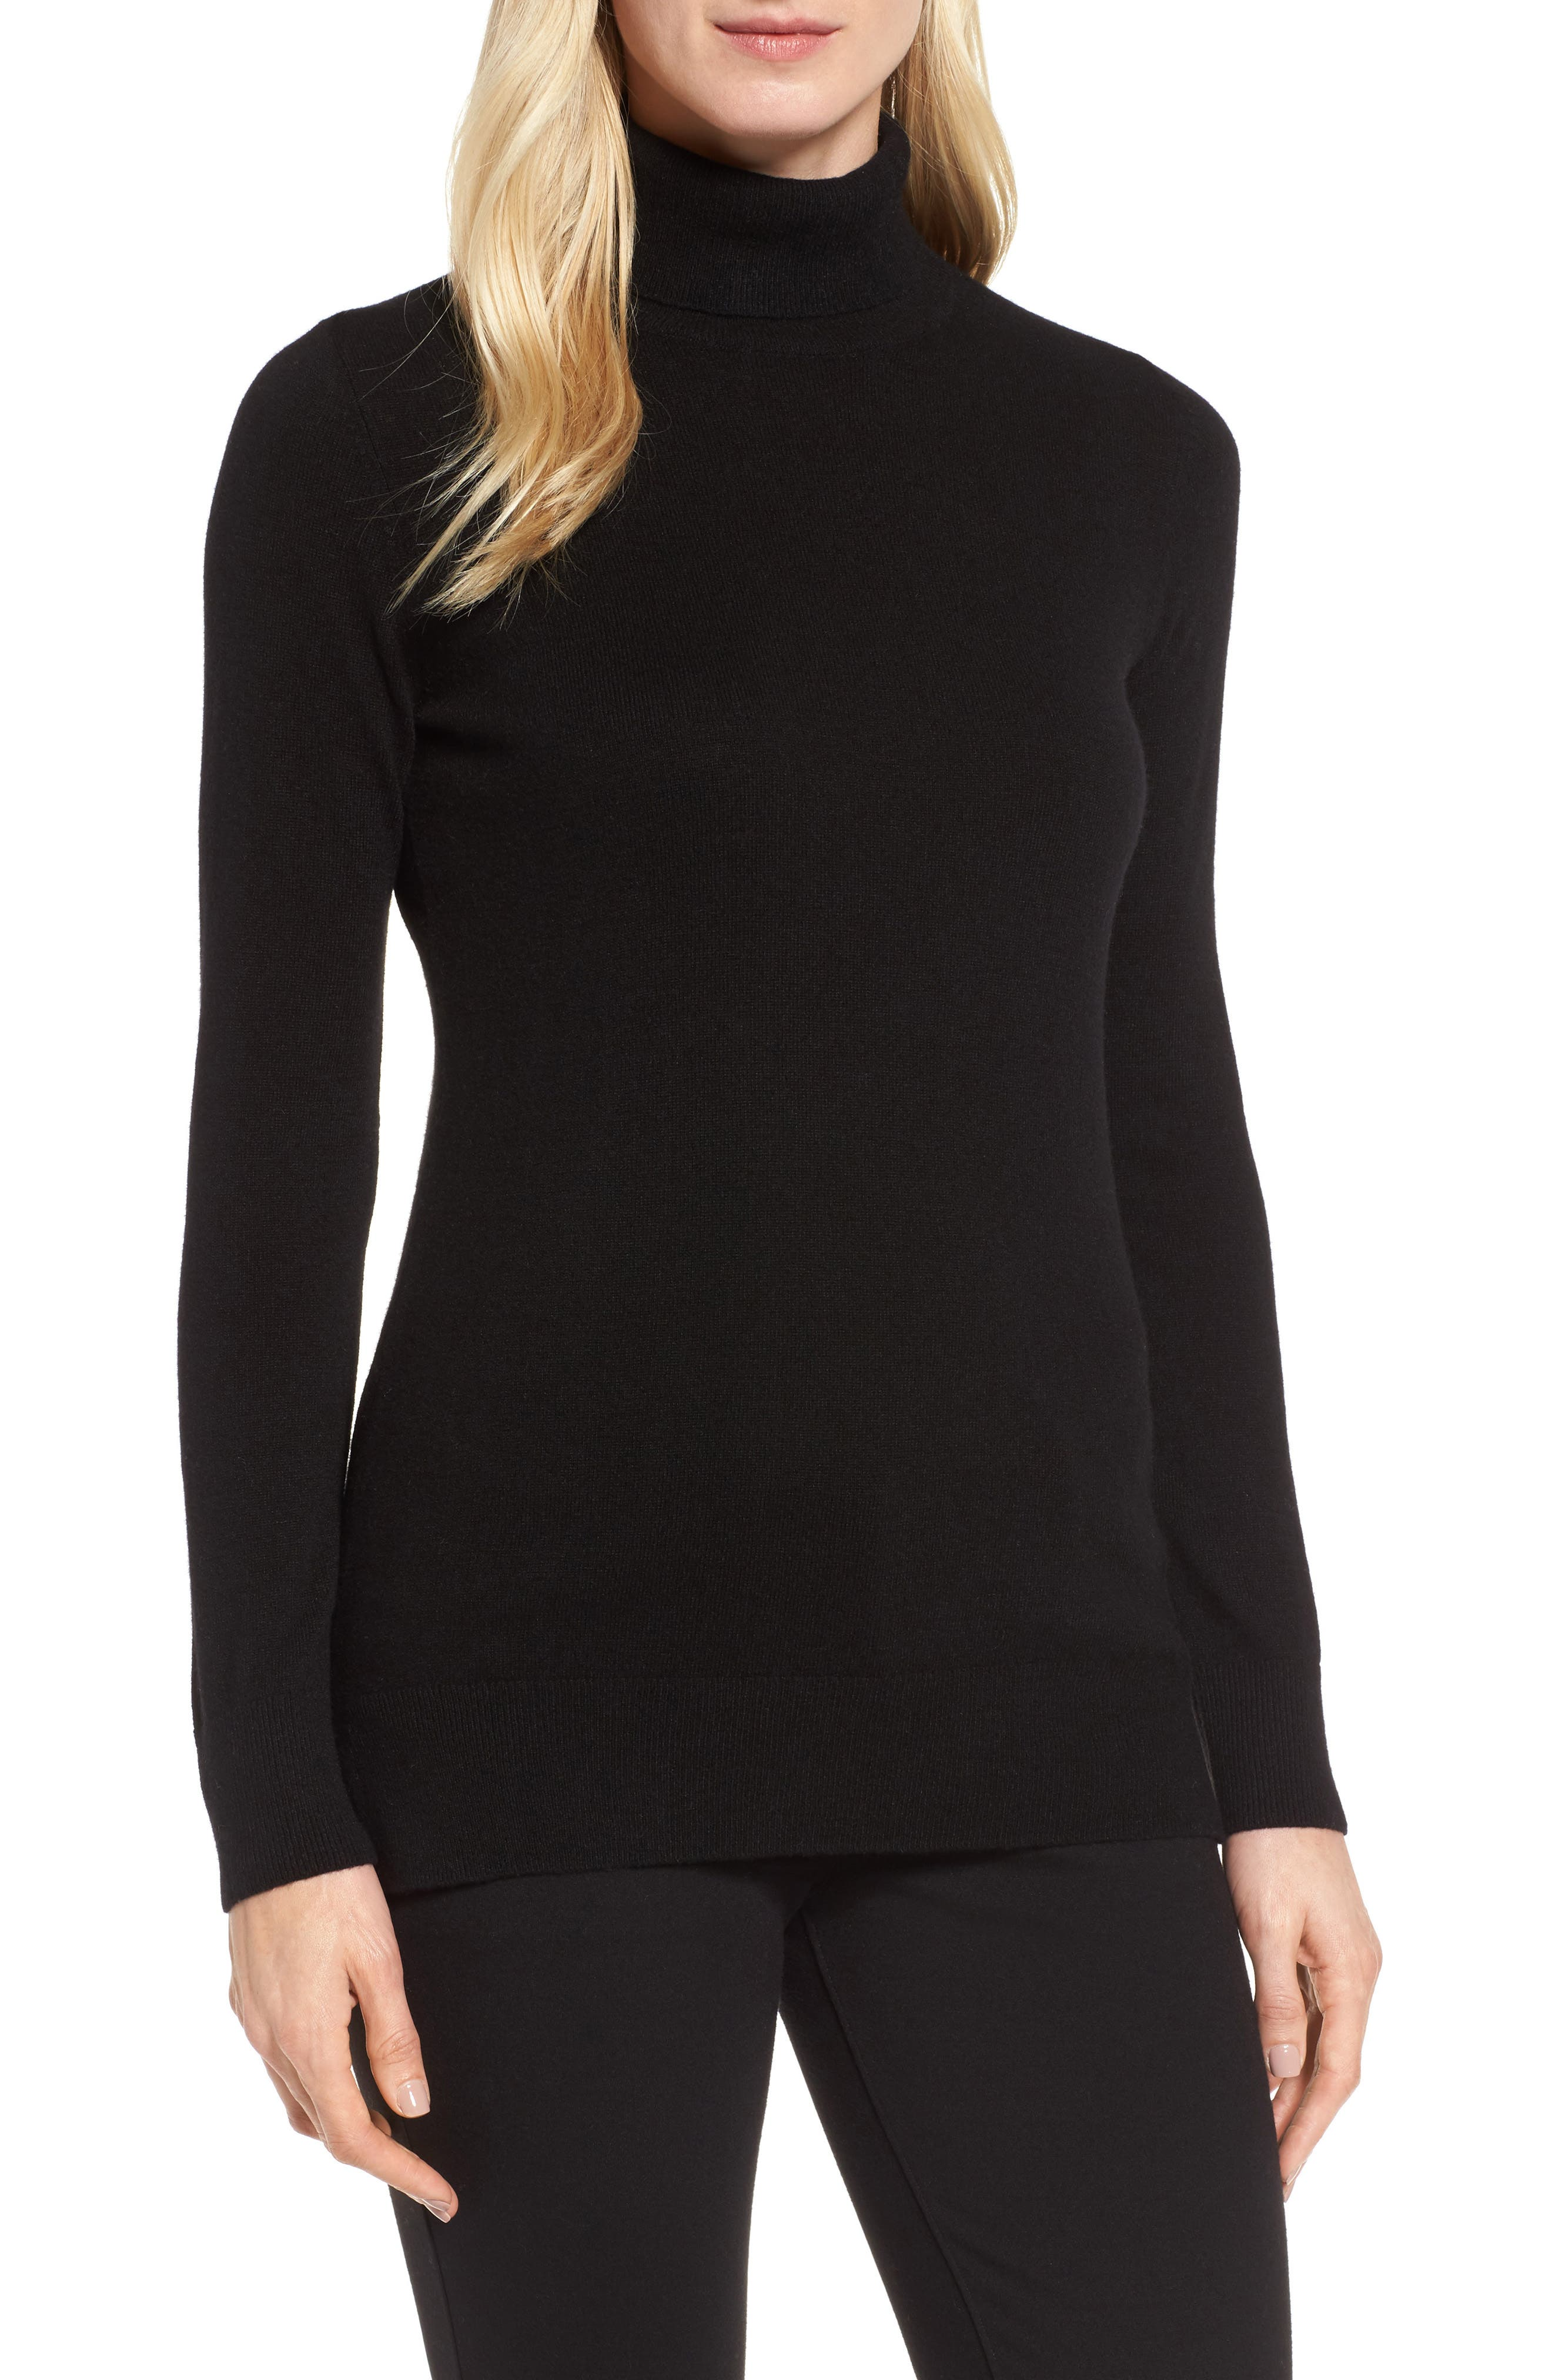 Women's Black Cashmere Sweaters | Nordstrom